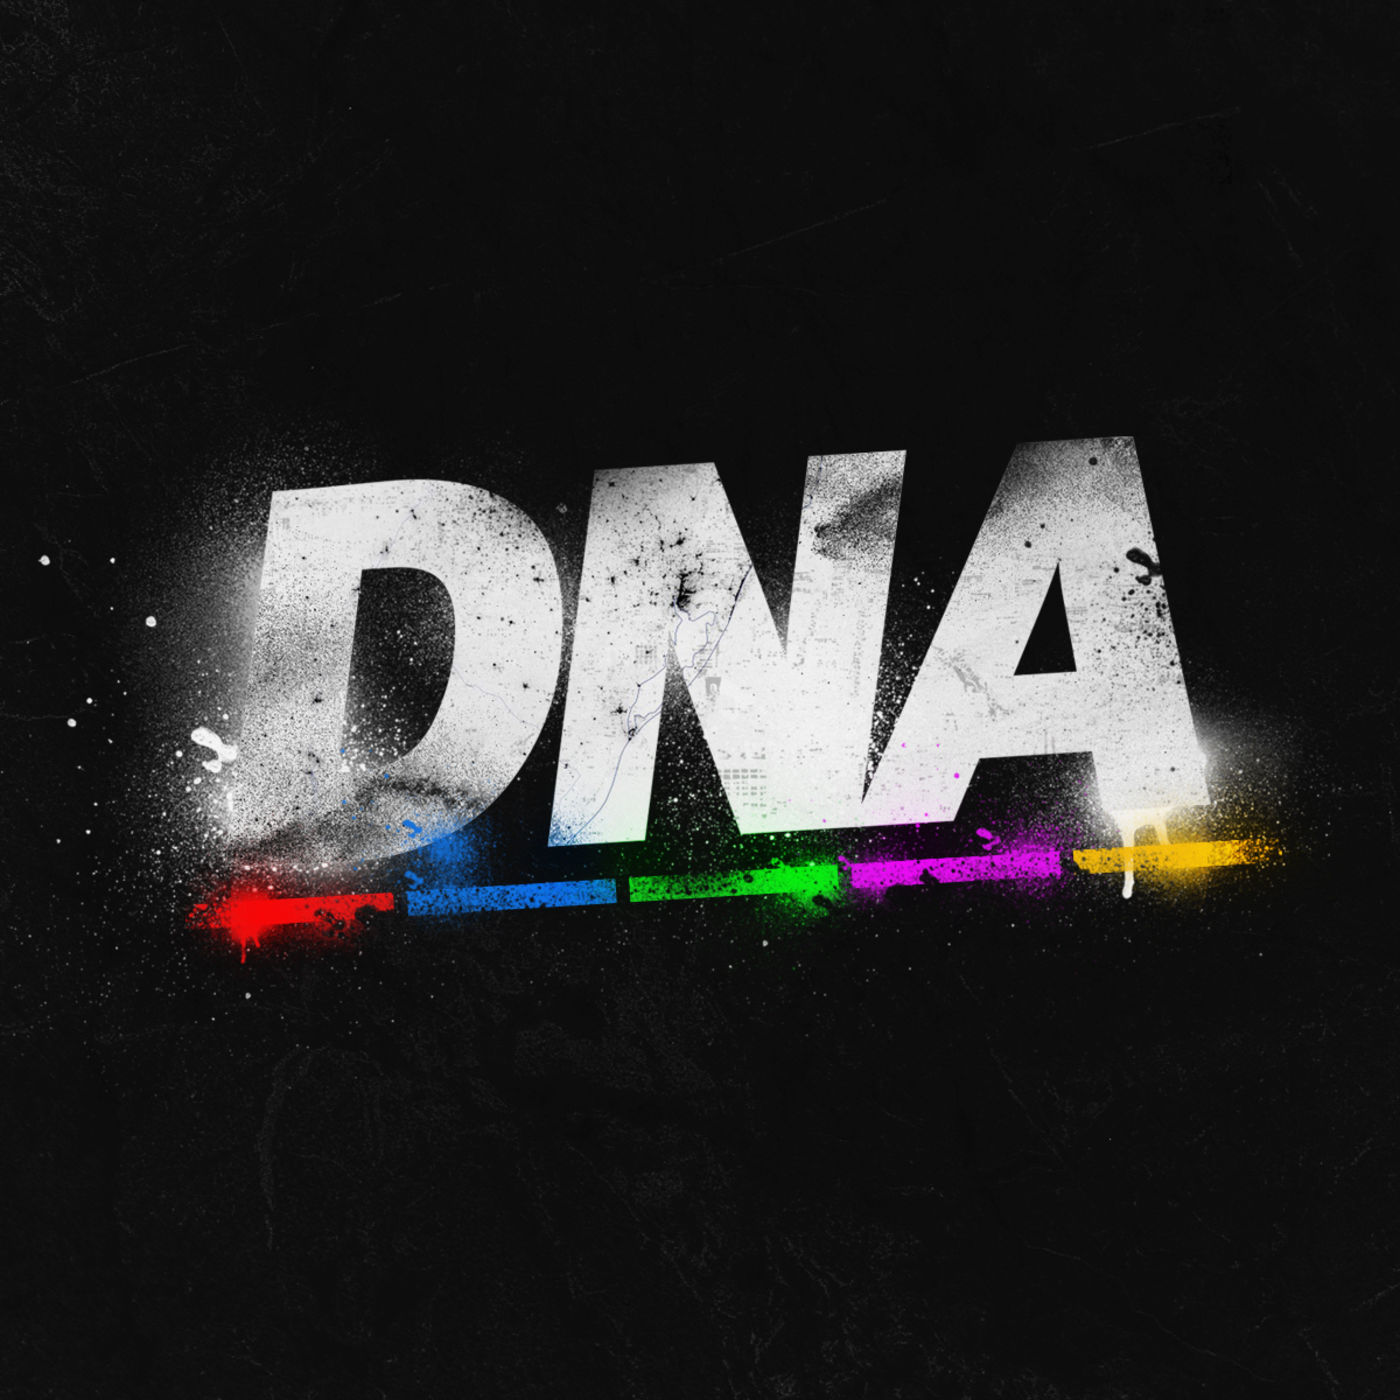 DNA #4 - Giving Our Best To The Body